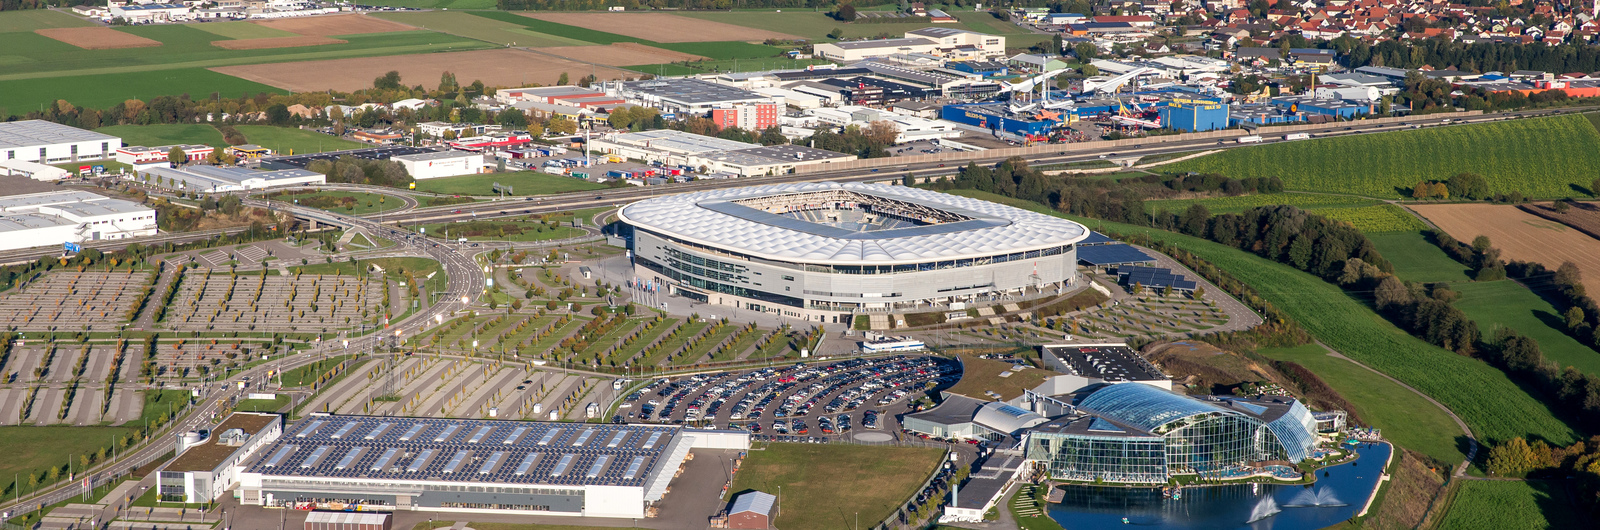 sinsheim city header